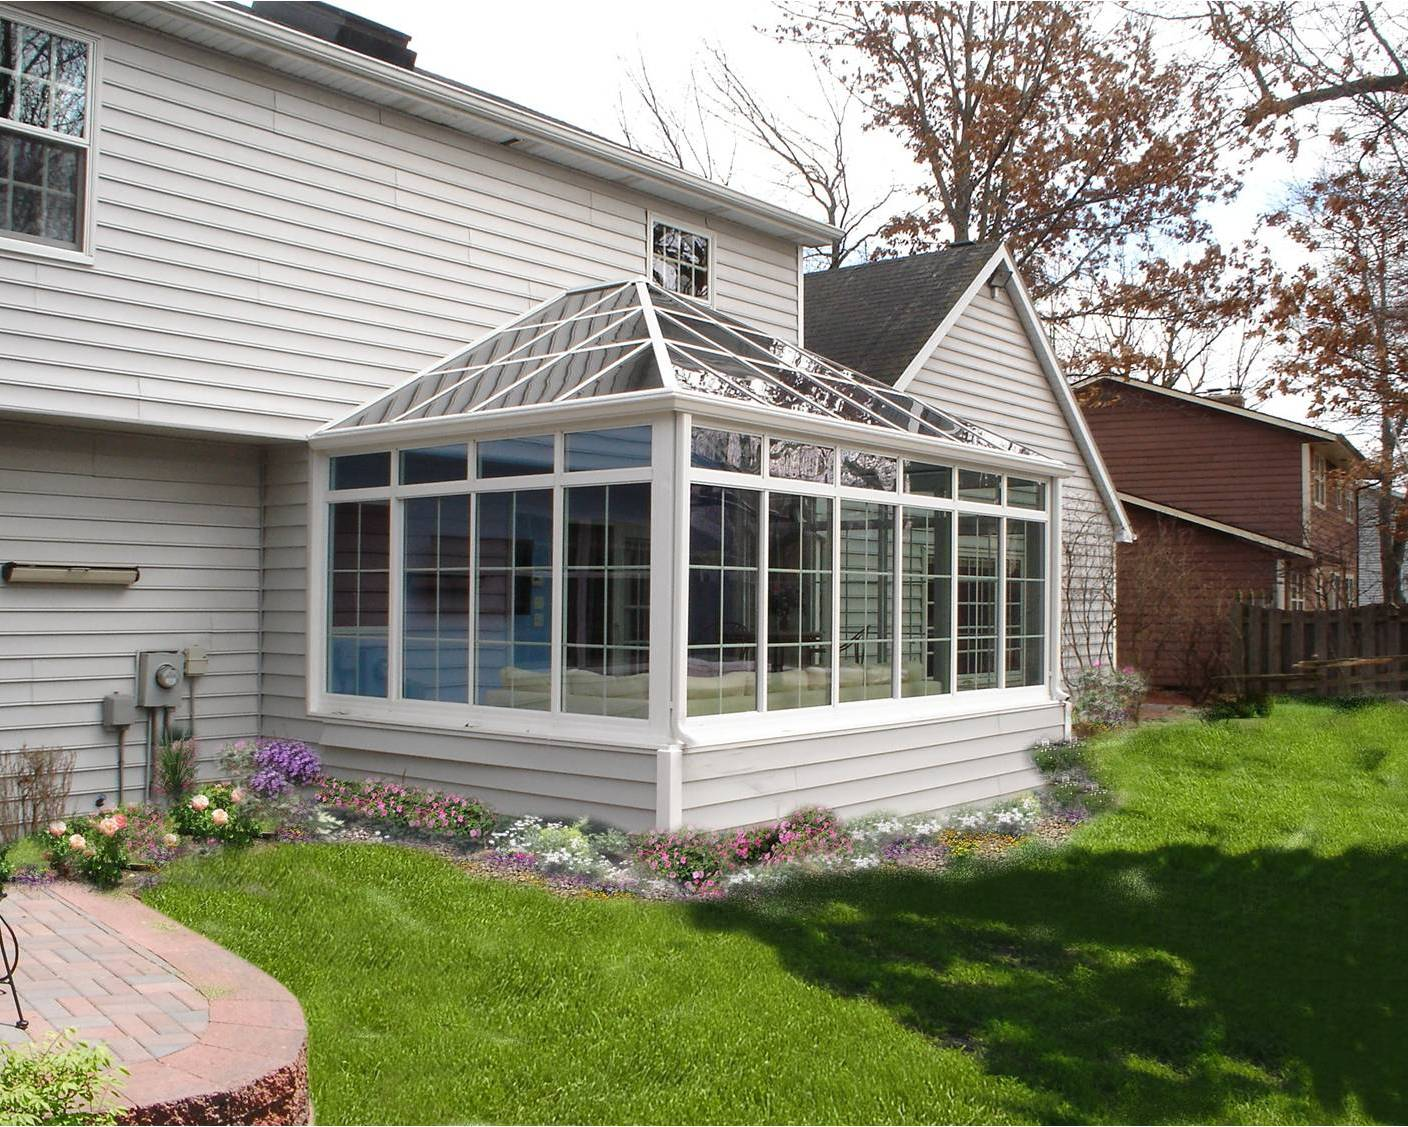 Photo gallery four seasons sunrooms 613 738 8055 for 4 season sunrooms